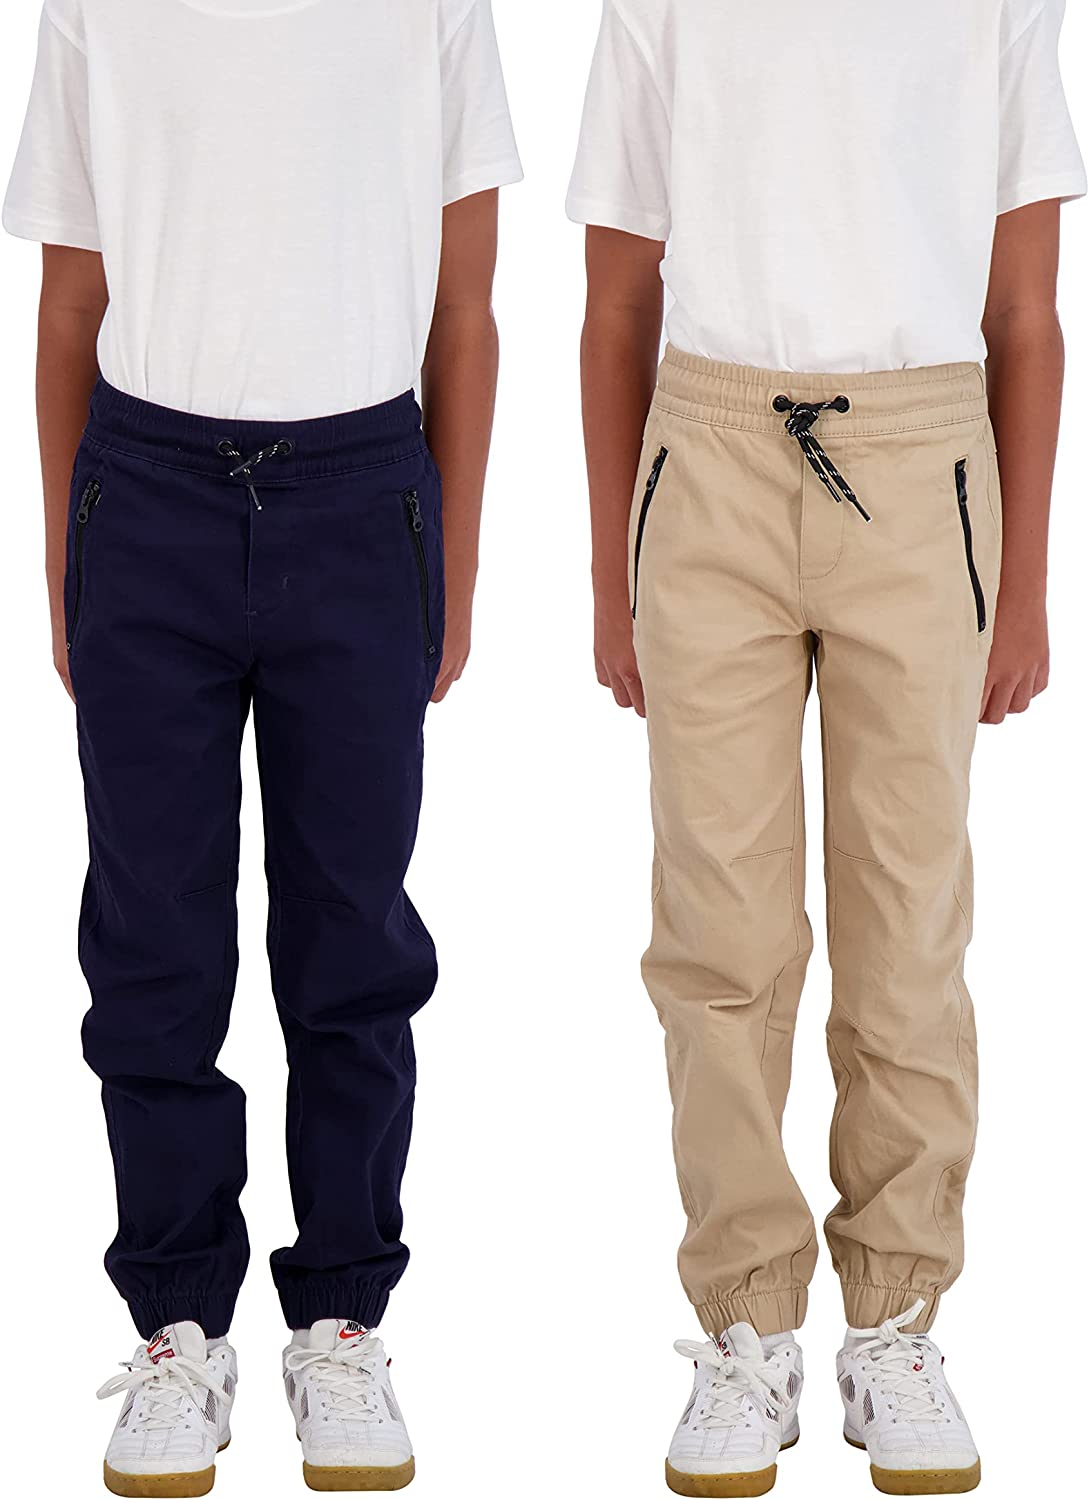 TONY HAWK Boys 2-Pack Twill Jogger with Pockets Pul Free shipping on posting reviews Pants Zipper Be super welcome